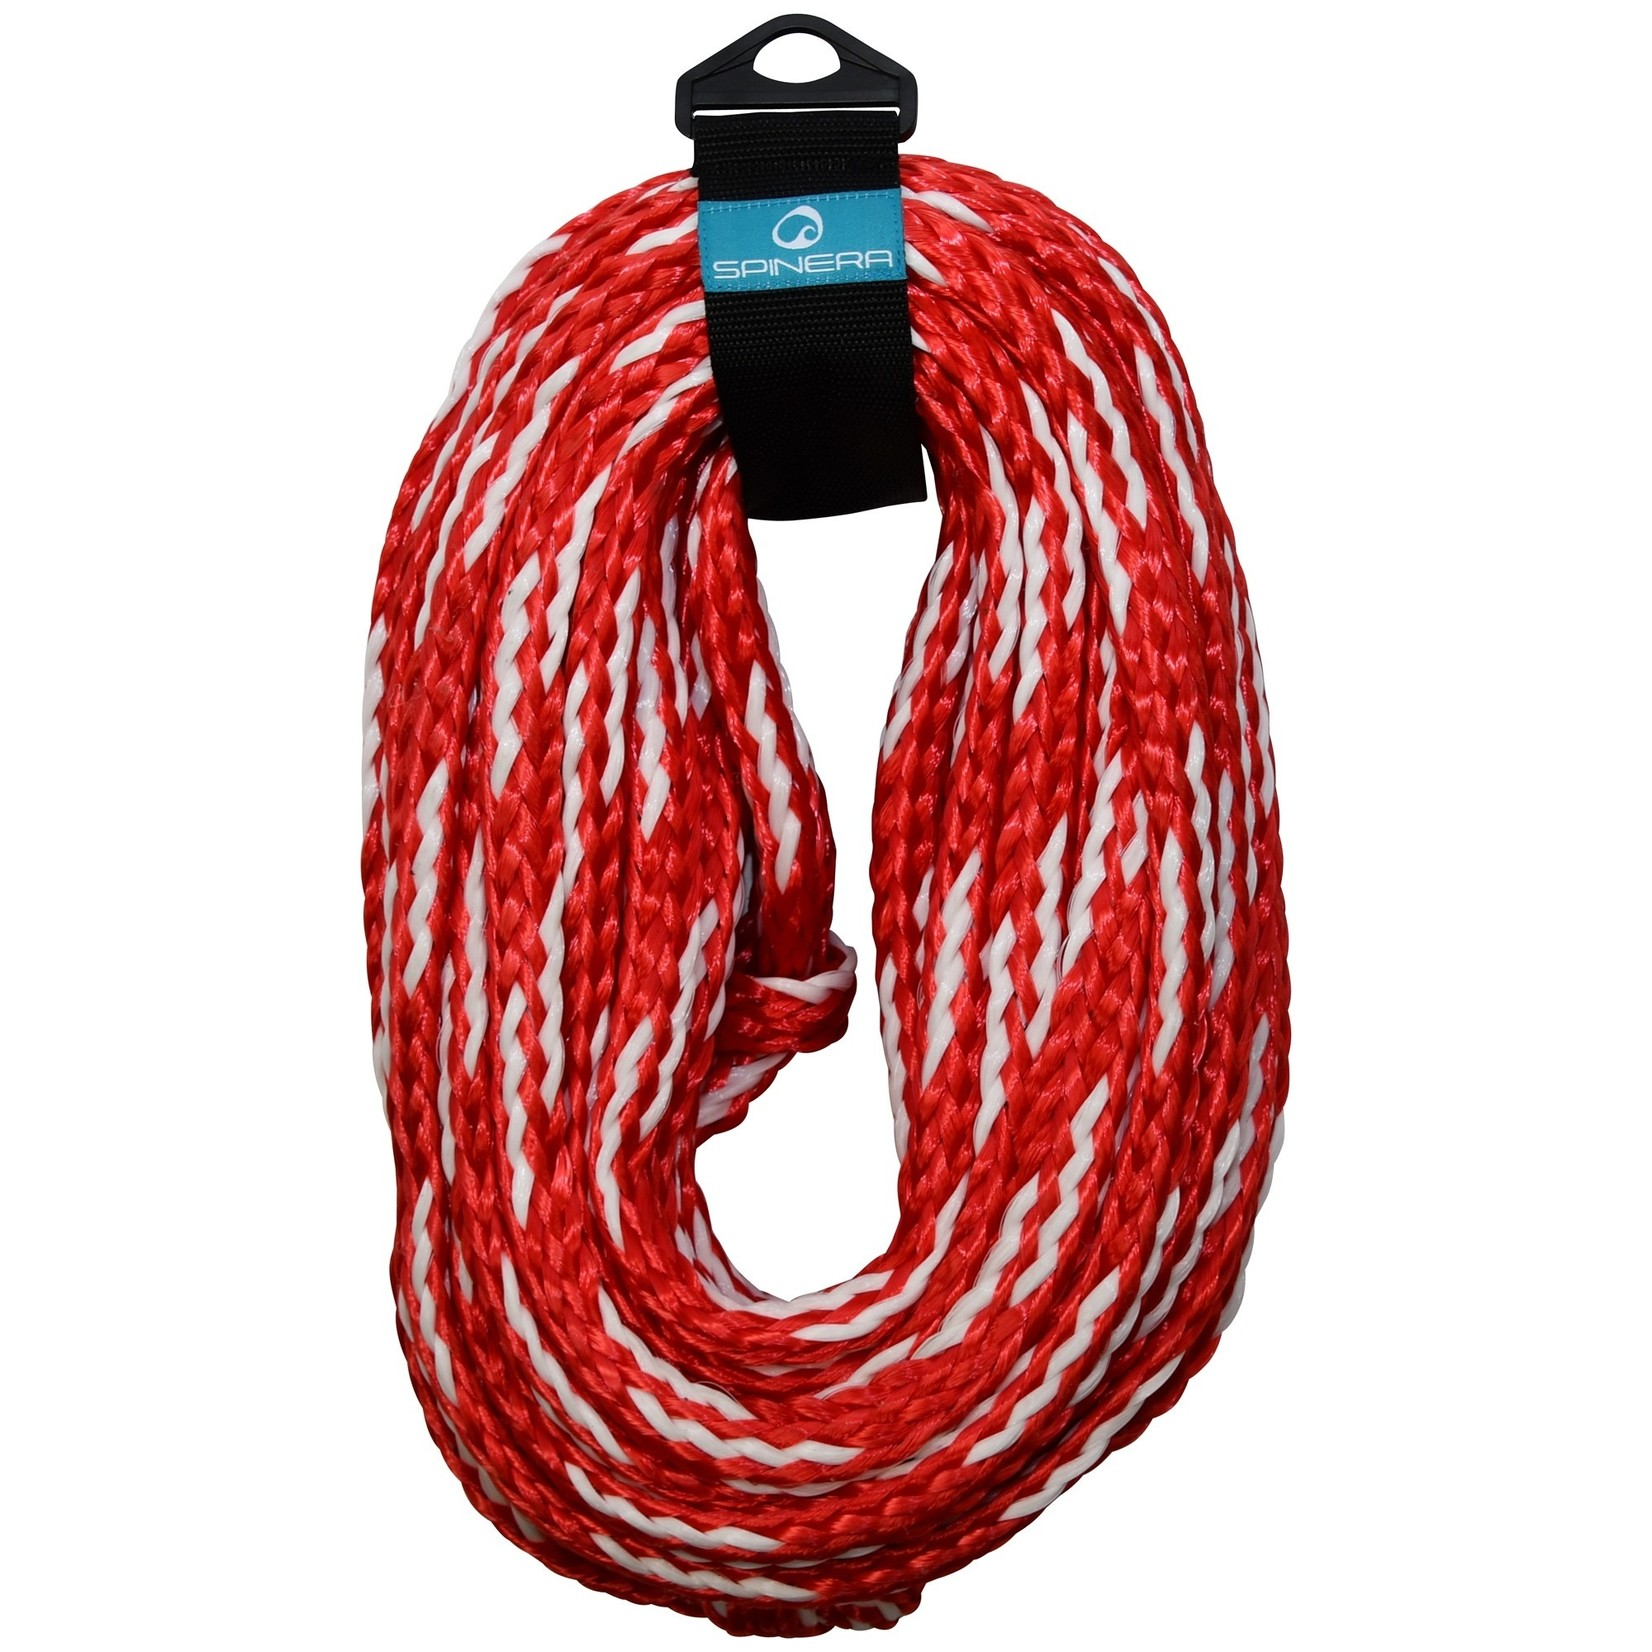 Spinera Towable Rope  10 - Ten persons